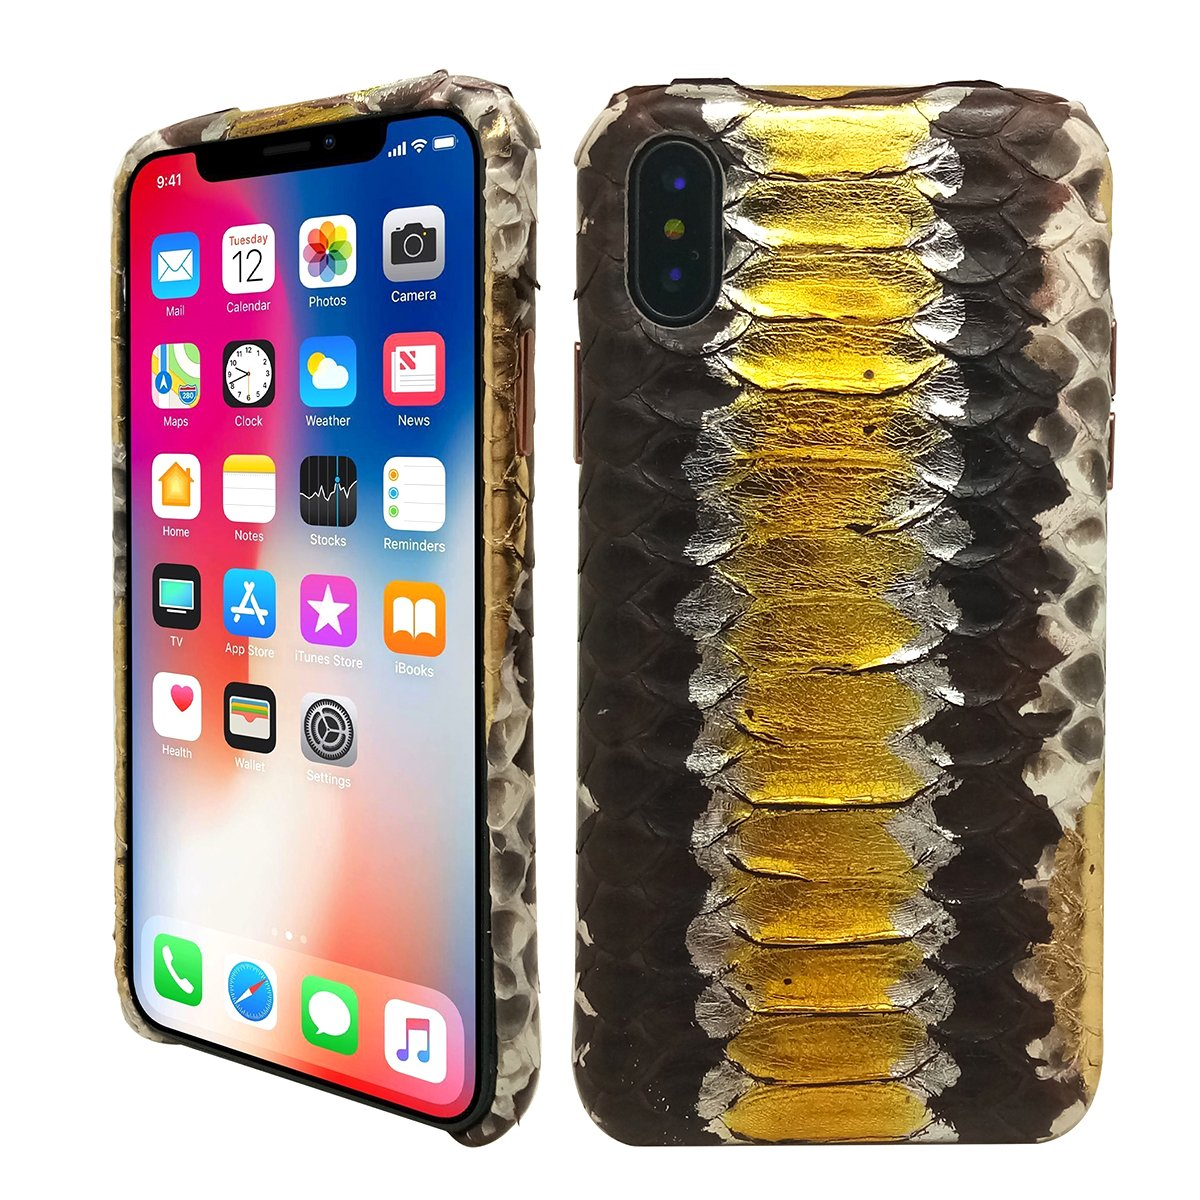 KING of Luxury Case Hand Made from Genuine Python Leather Back Cover Cell Phone Protection Case For iPhone X / iPhone 10 (Python Edition - GOLDEN)